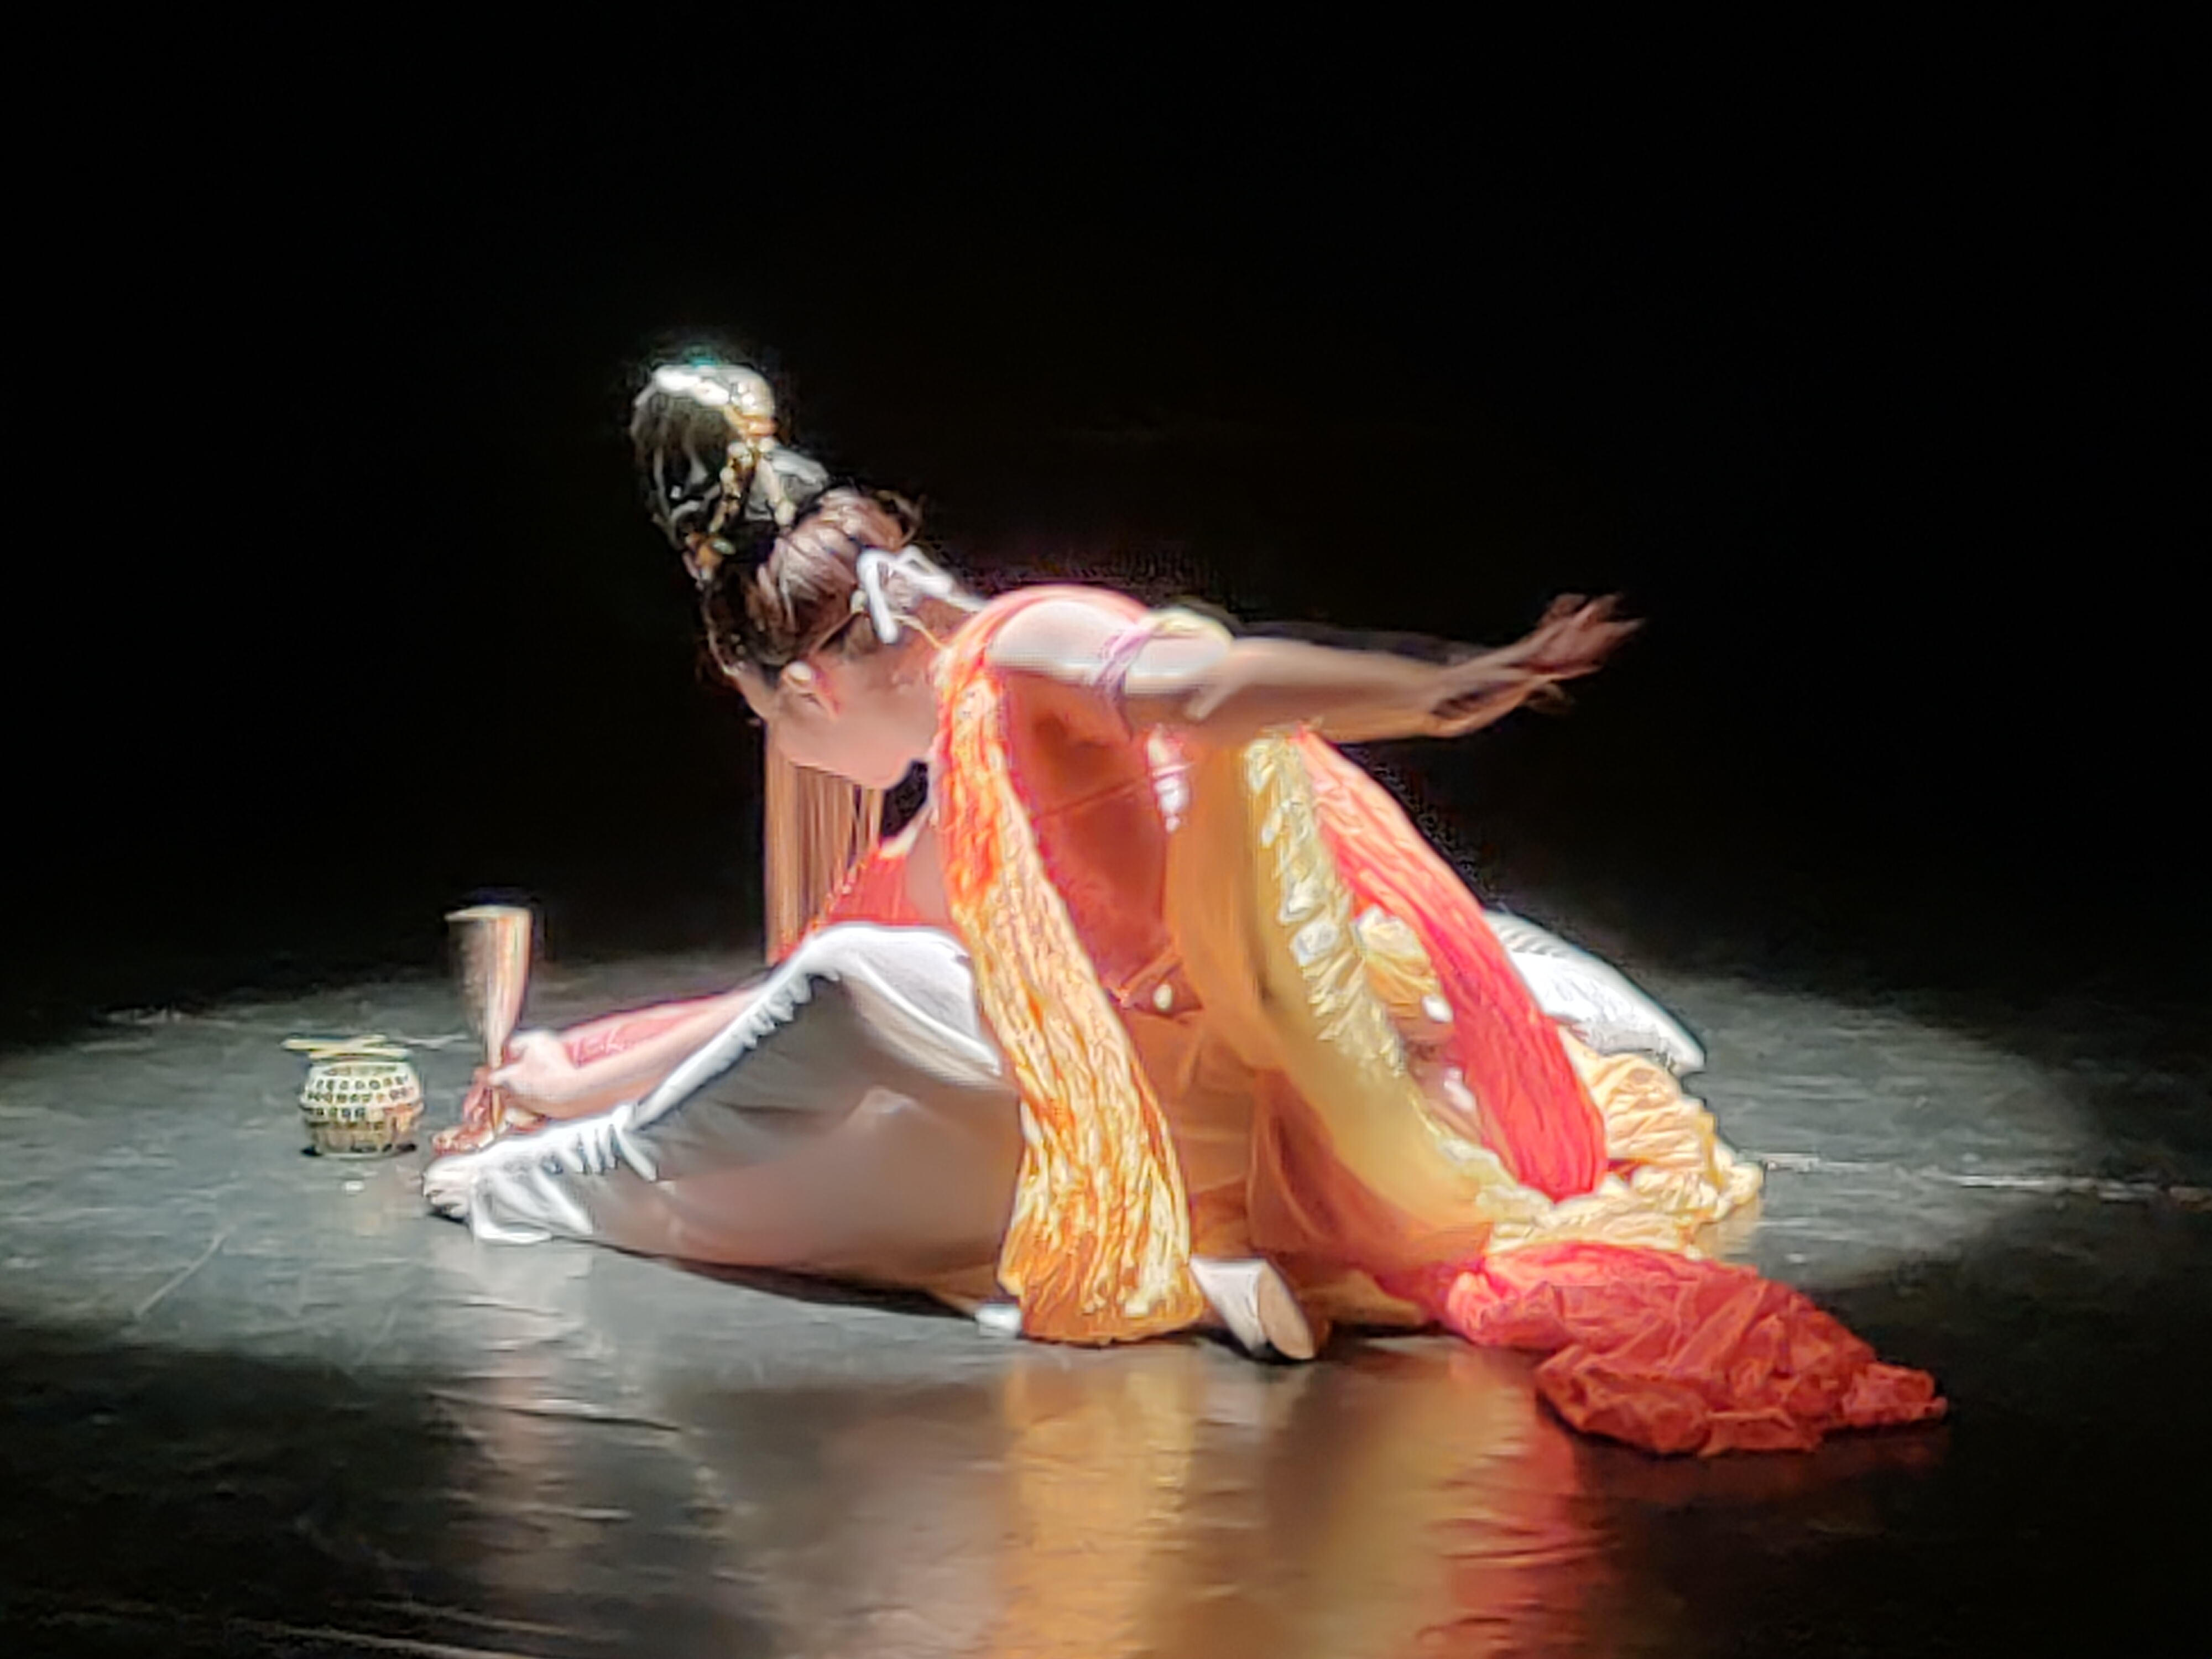 Performed by: Katherine Moordinaire (Picture: Connected to India)